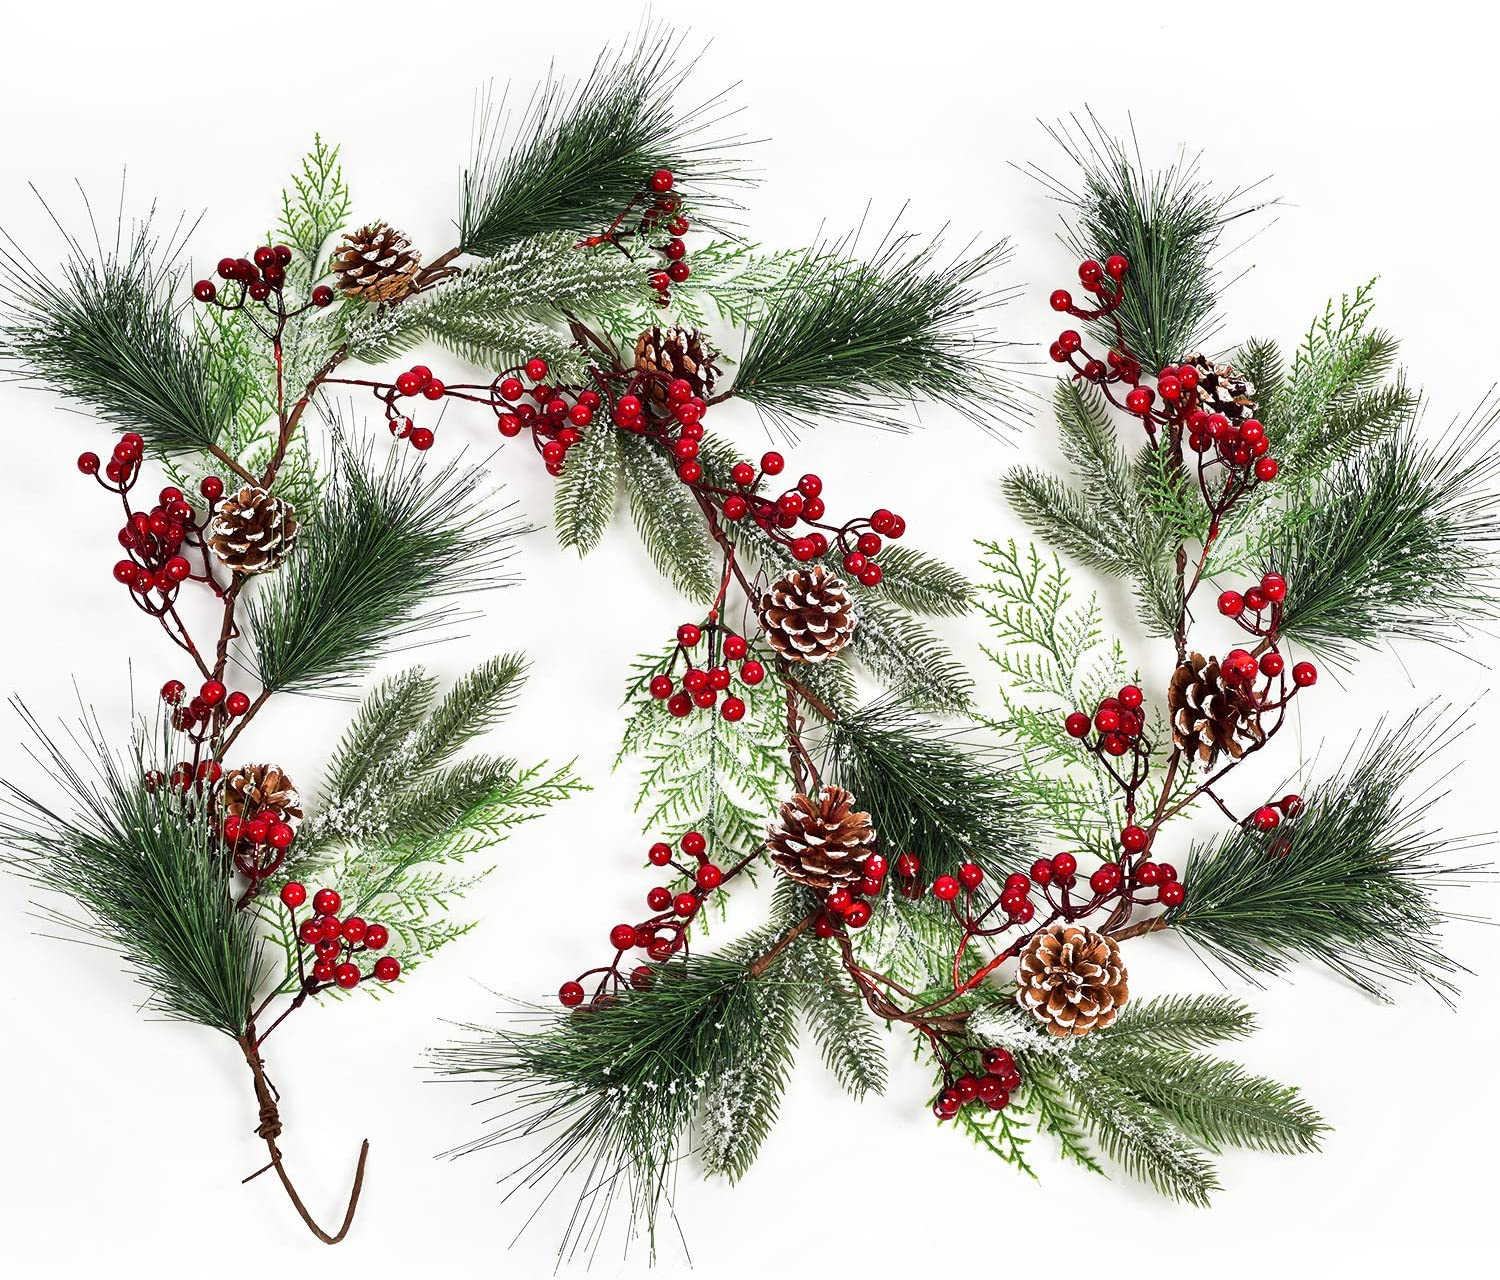 DearHouse 6FT Berry Pine Christmas Garland with Spruce Cypress Berries Pinecones Winter Artificial Greenery Garland for Holiday Season Mantel Fireplace Table Runner Centerpiece New Year Decor